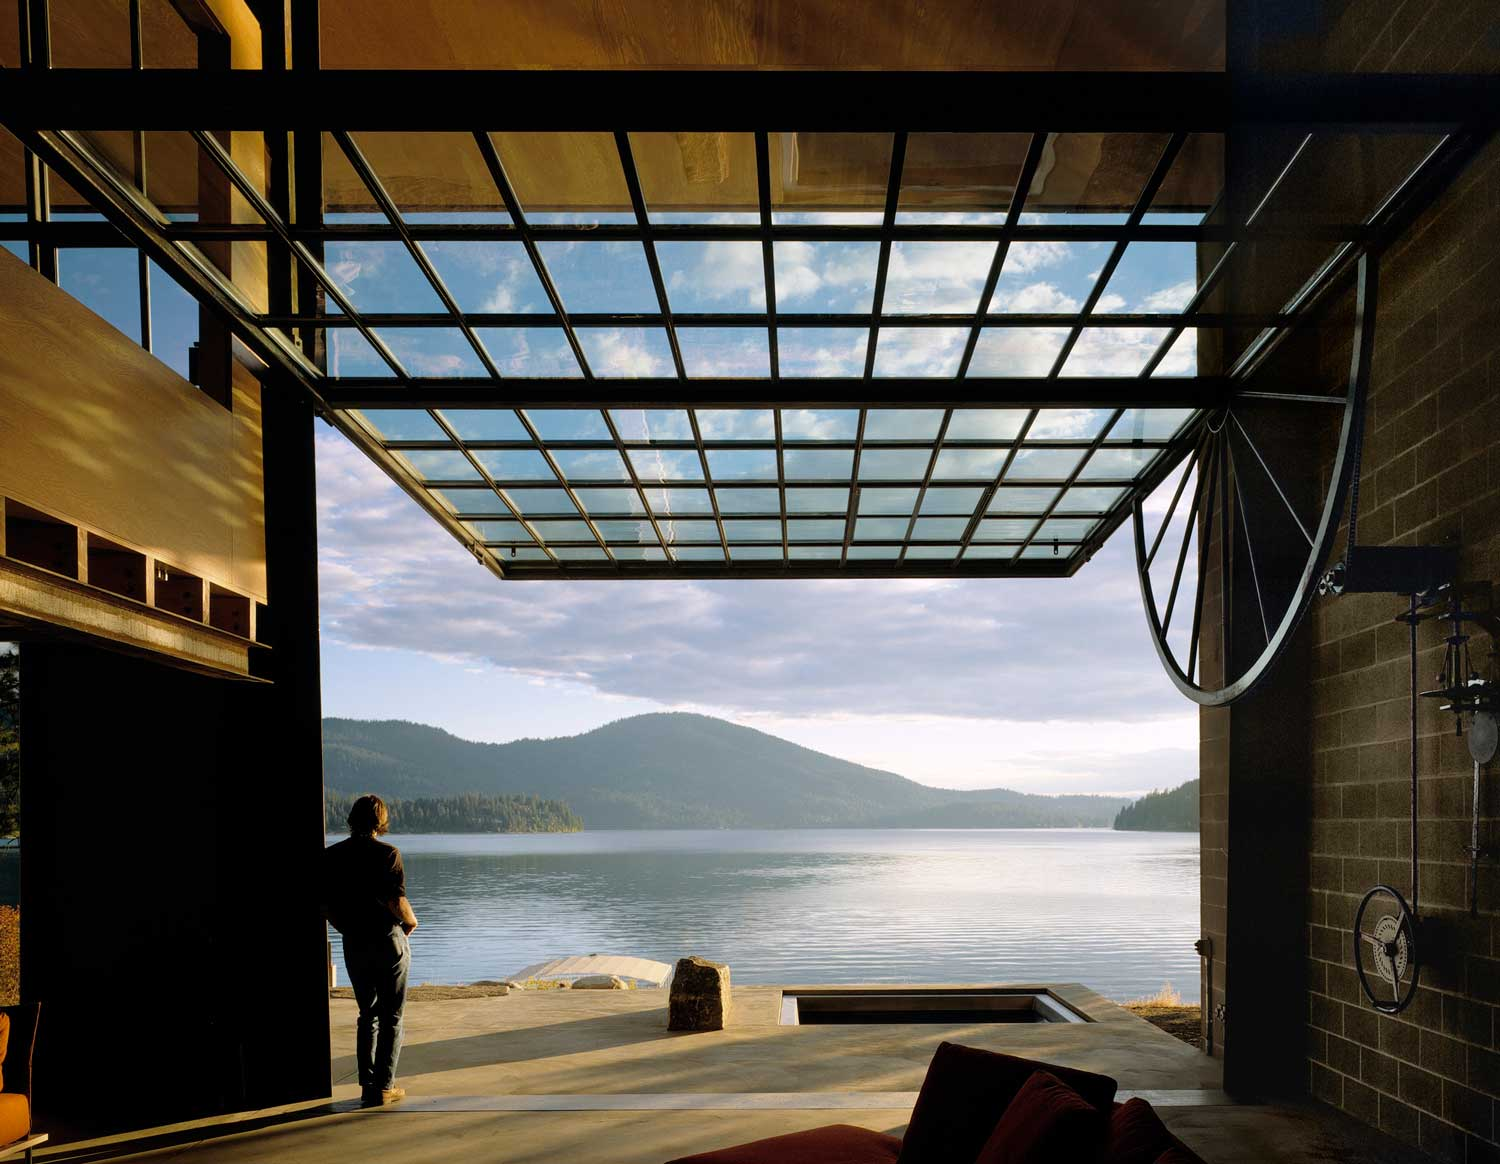 Chicken Point Cabin Idaho by Olson Kundig. Photo by Benja in Benschneider | Yellowtrace